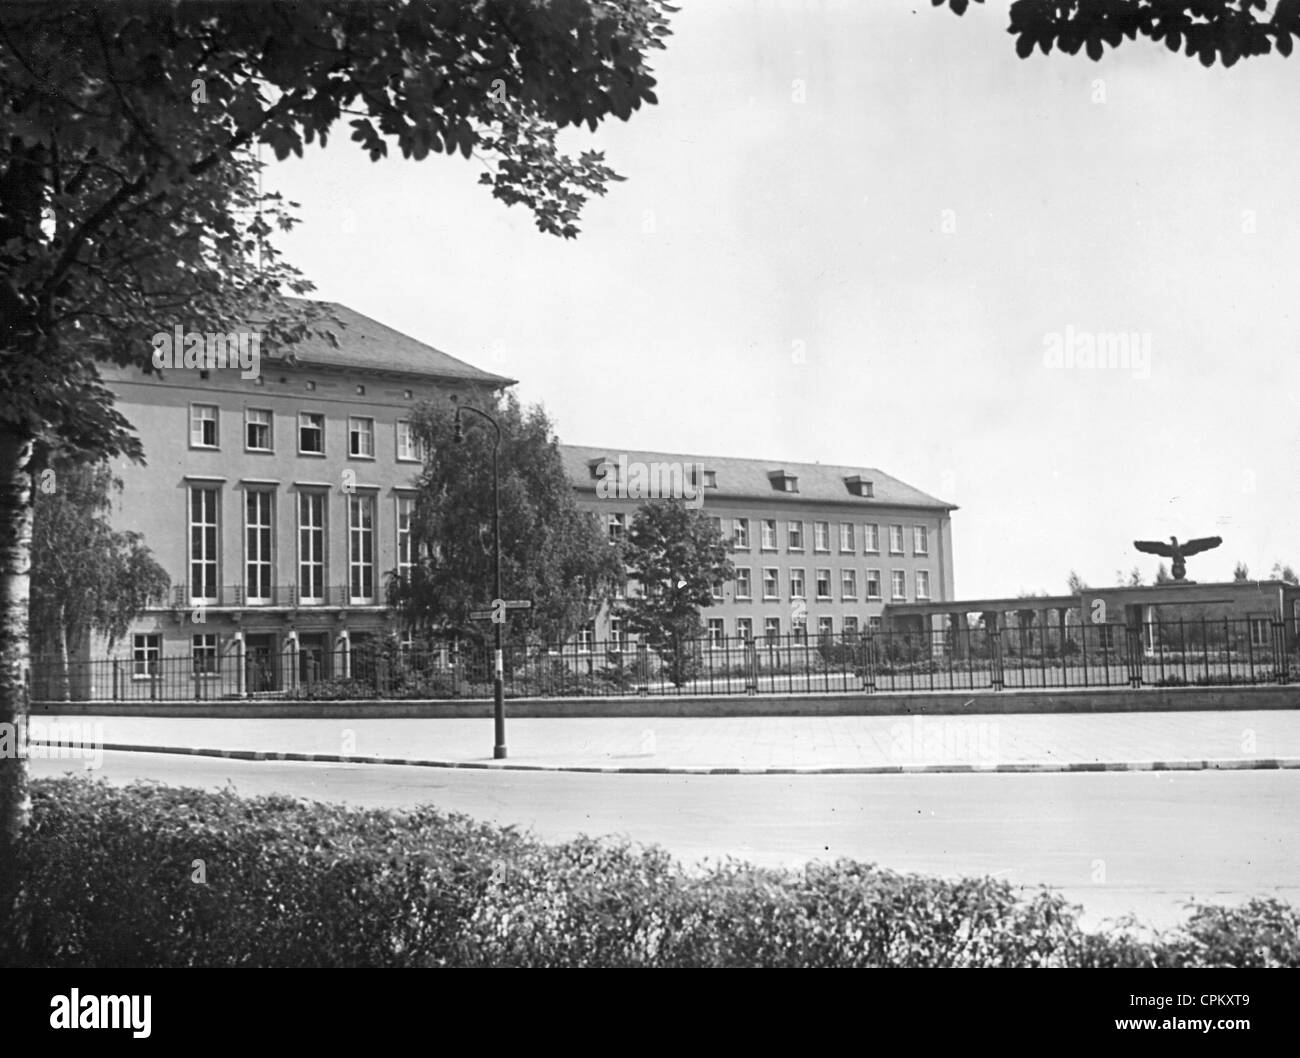 berlin 1942 stock photos berlin 1942 stock images alamy. Black Bedroom Furniture Sets. Home Design Ideas